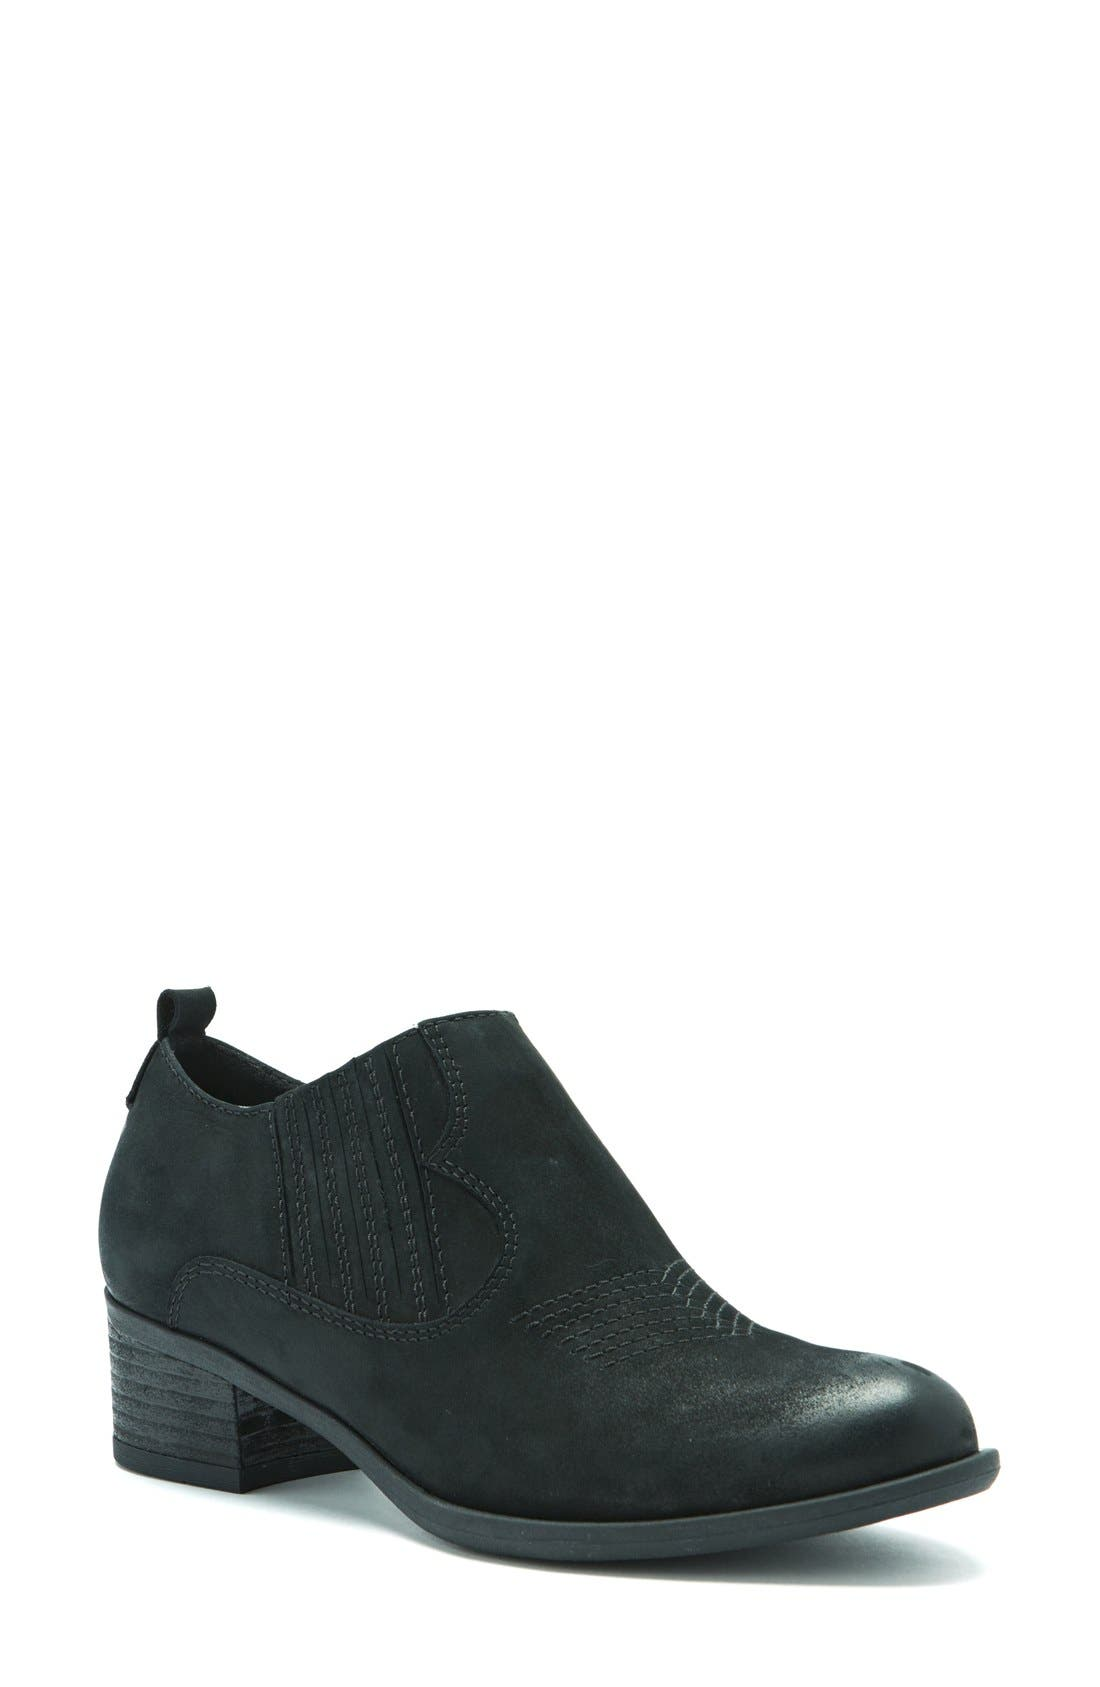 Maddox Waterproof Western Bootie,                             Main thumbnail 1, color,                             005